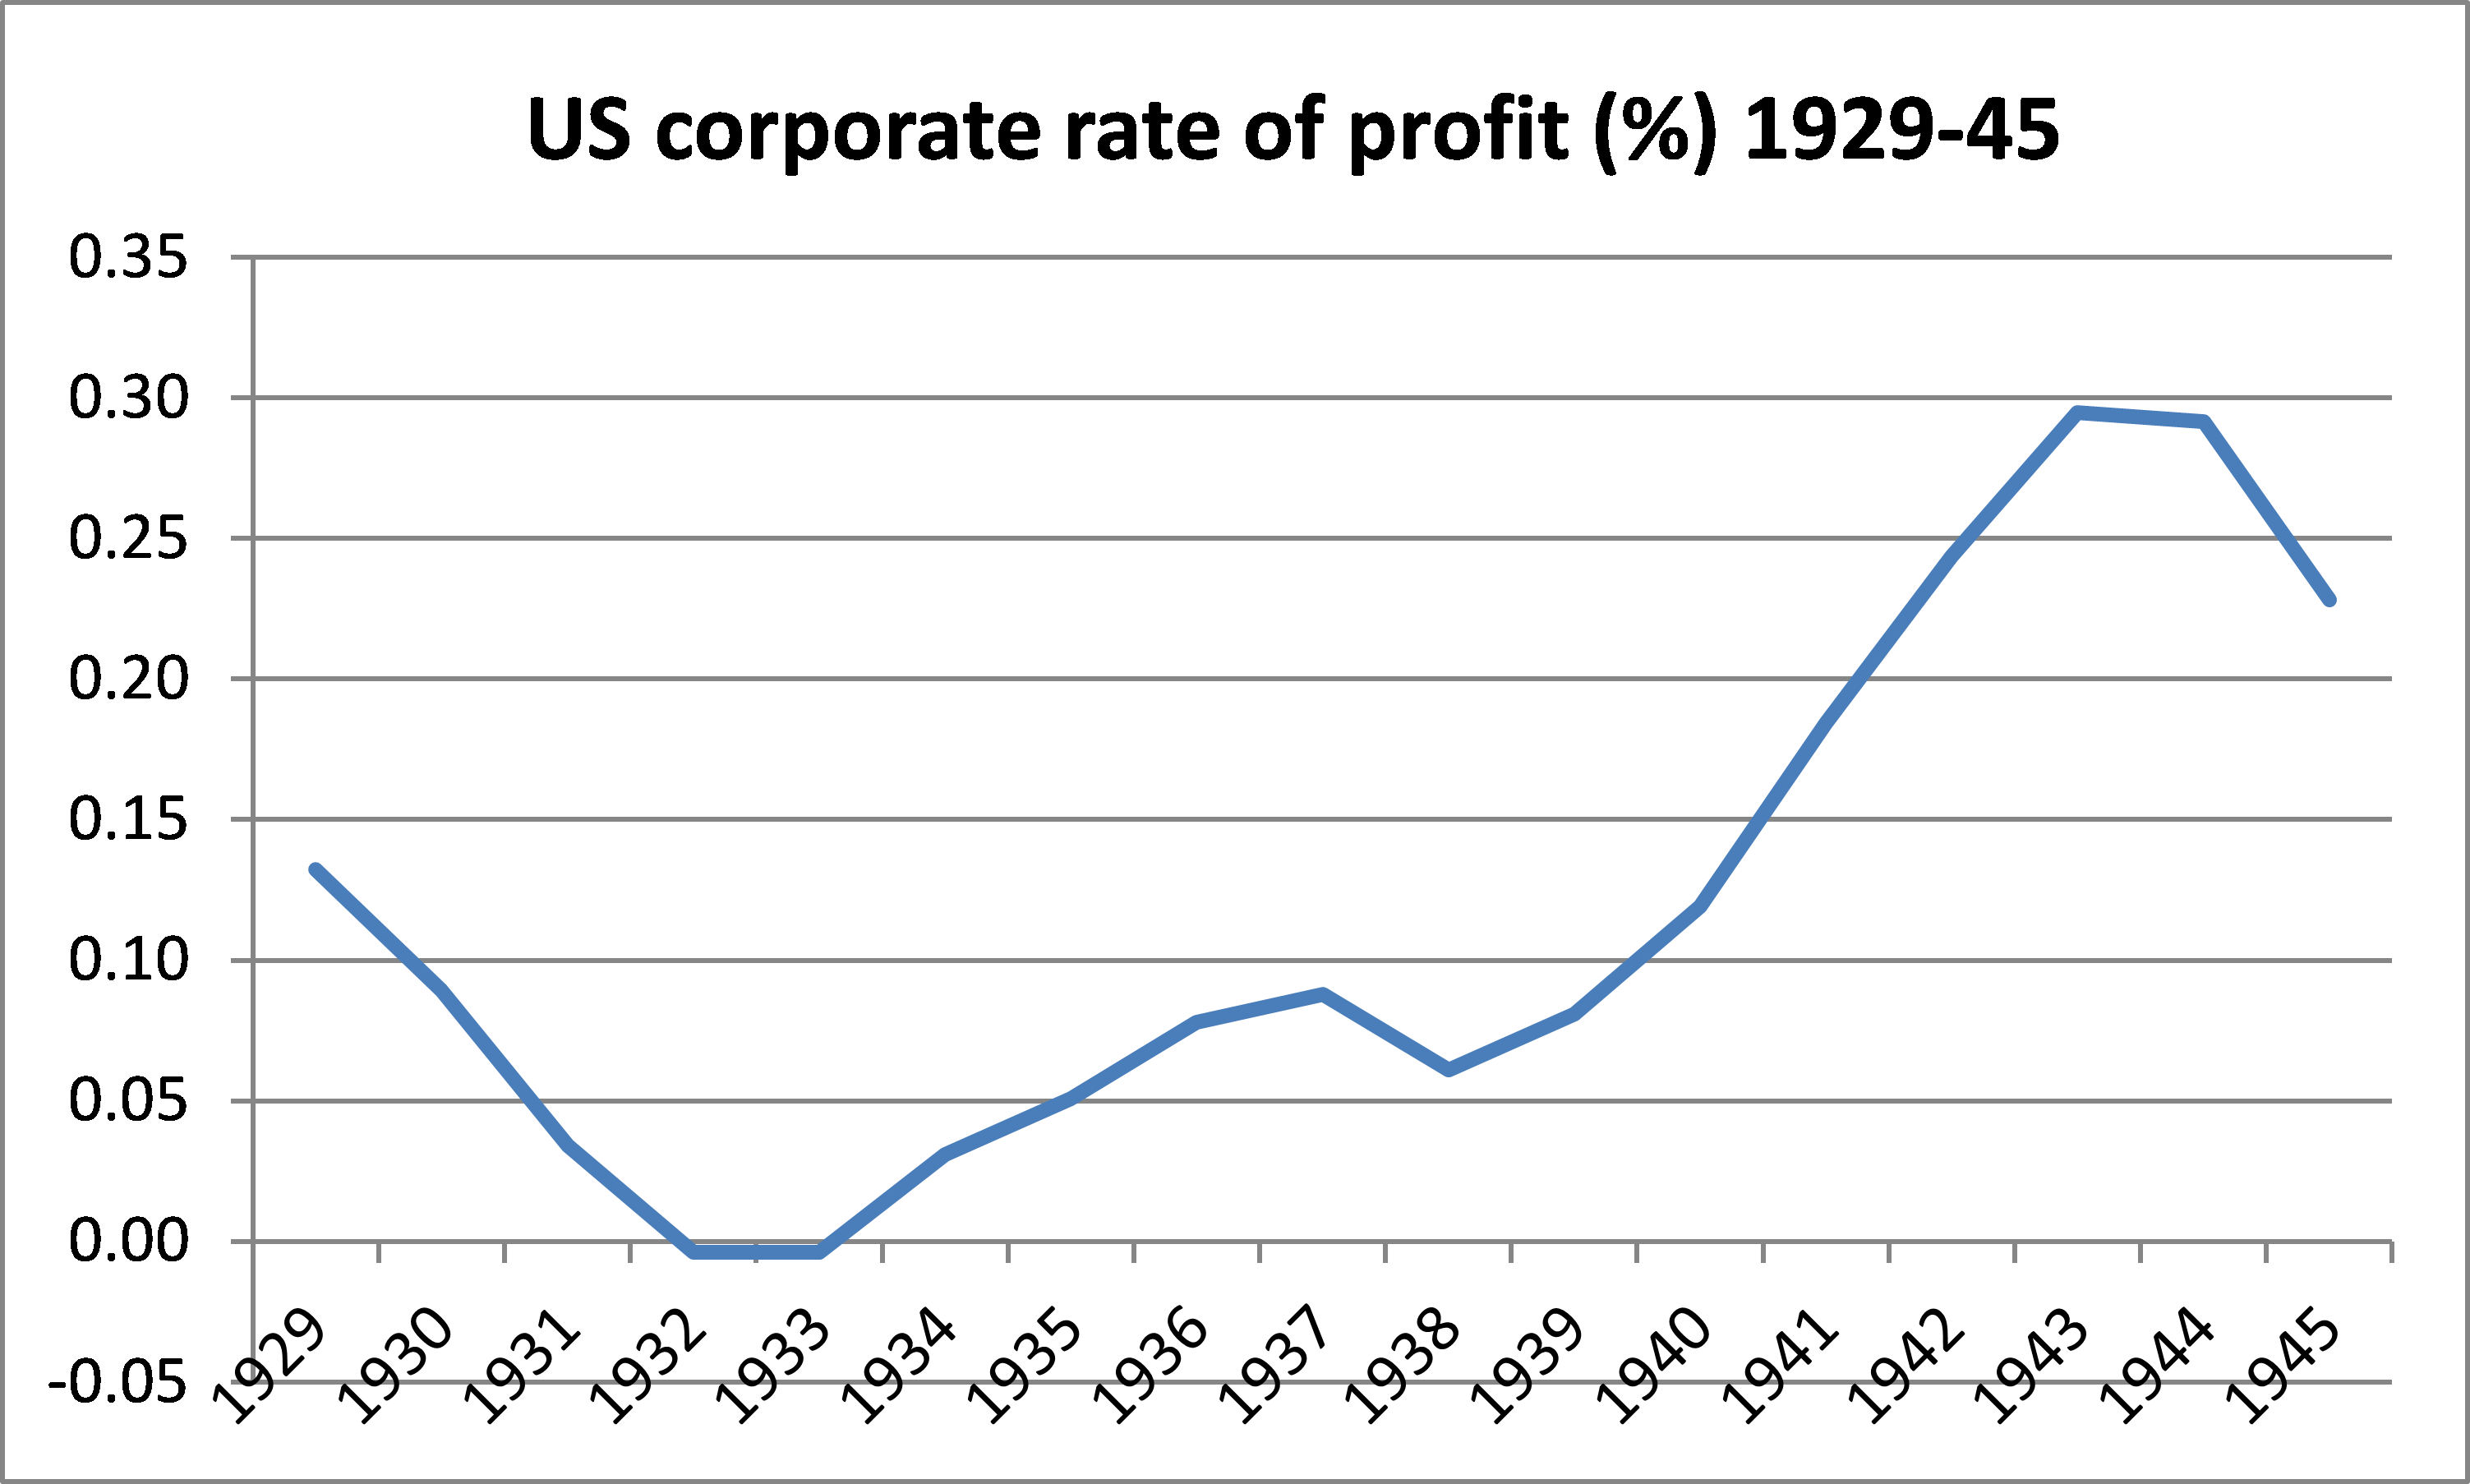 the great depression and the war michael roberts blog it was the same story for the mass of corporate profits too even by 1940 profits were still below that of 1929